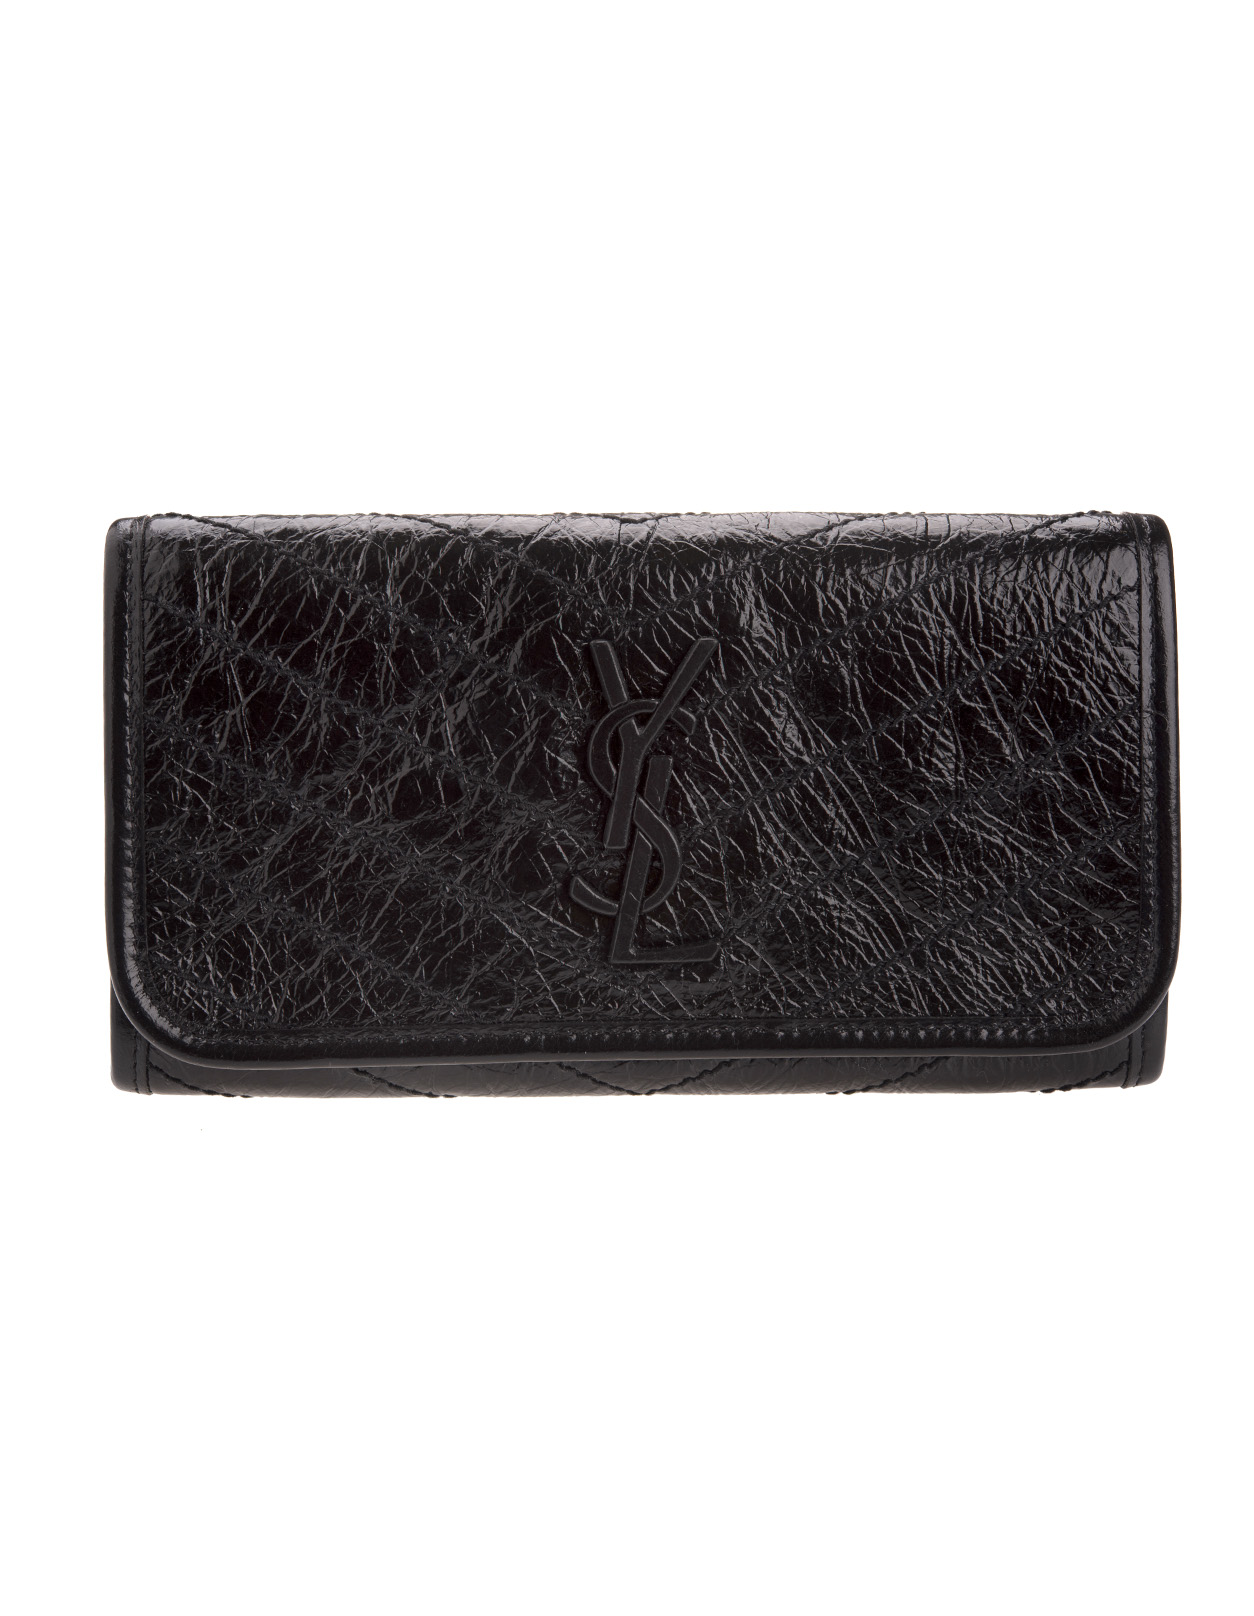 dbad23612e Niki Large Wallet In Black Vintage Leather